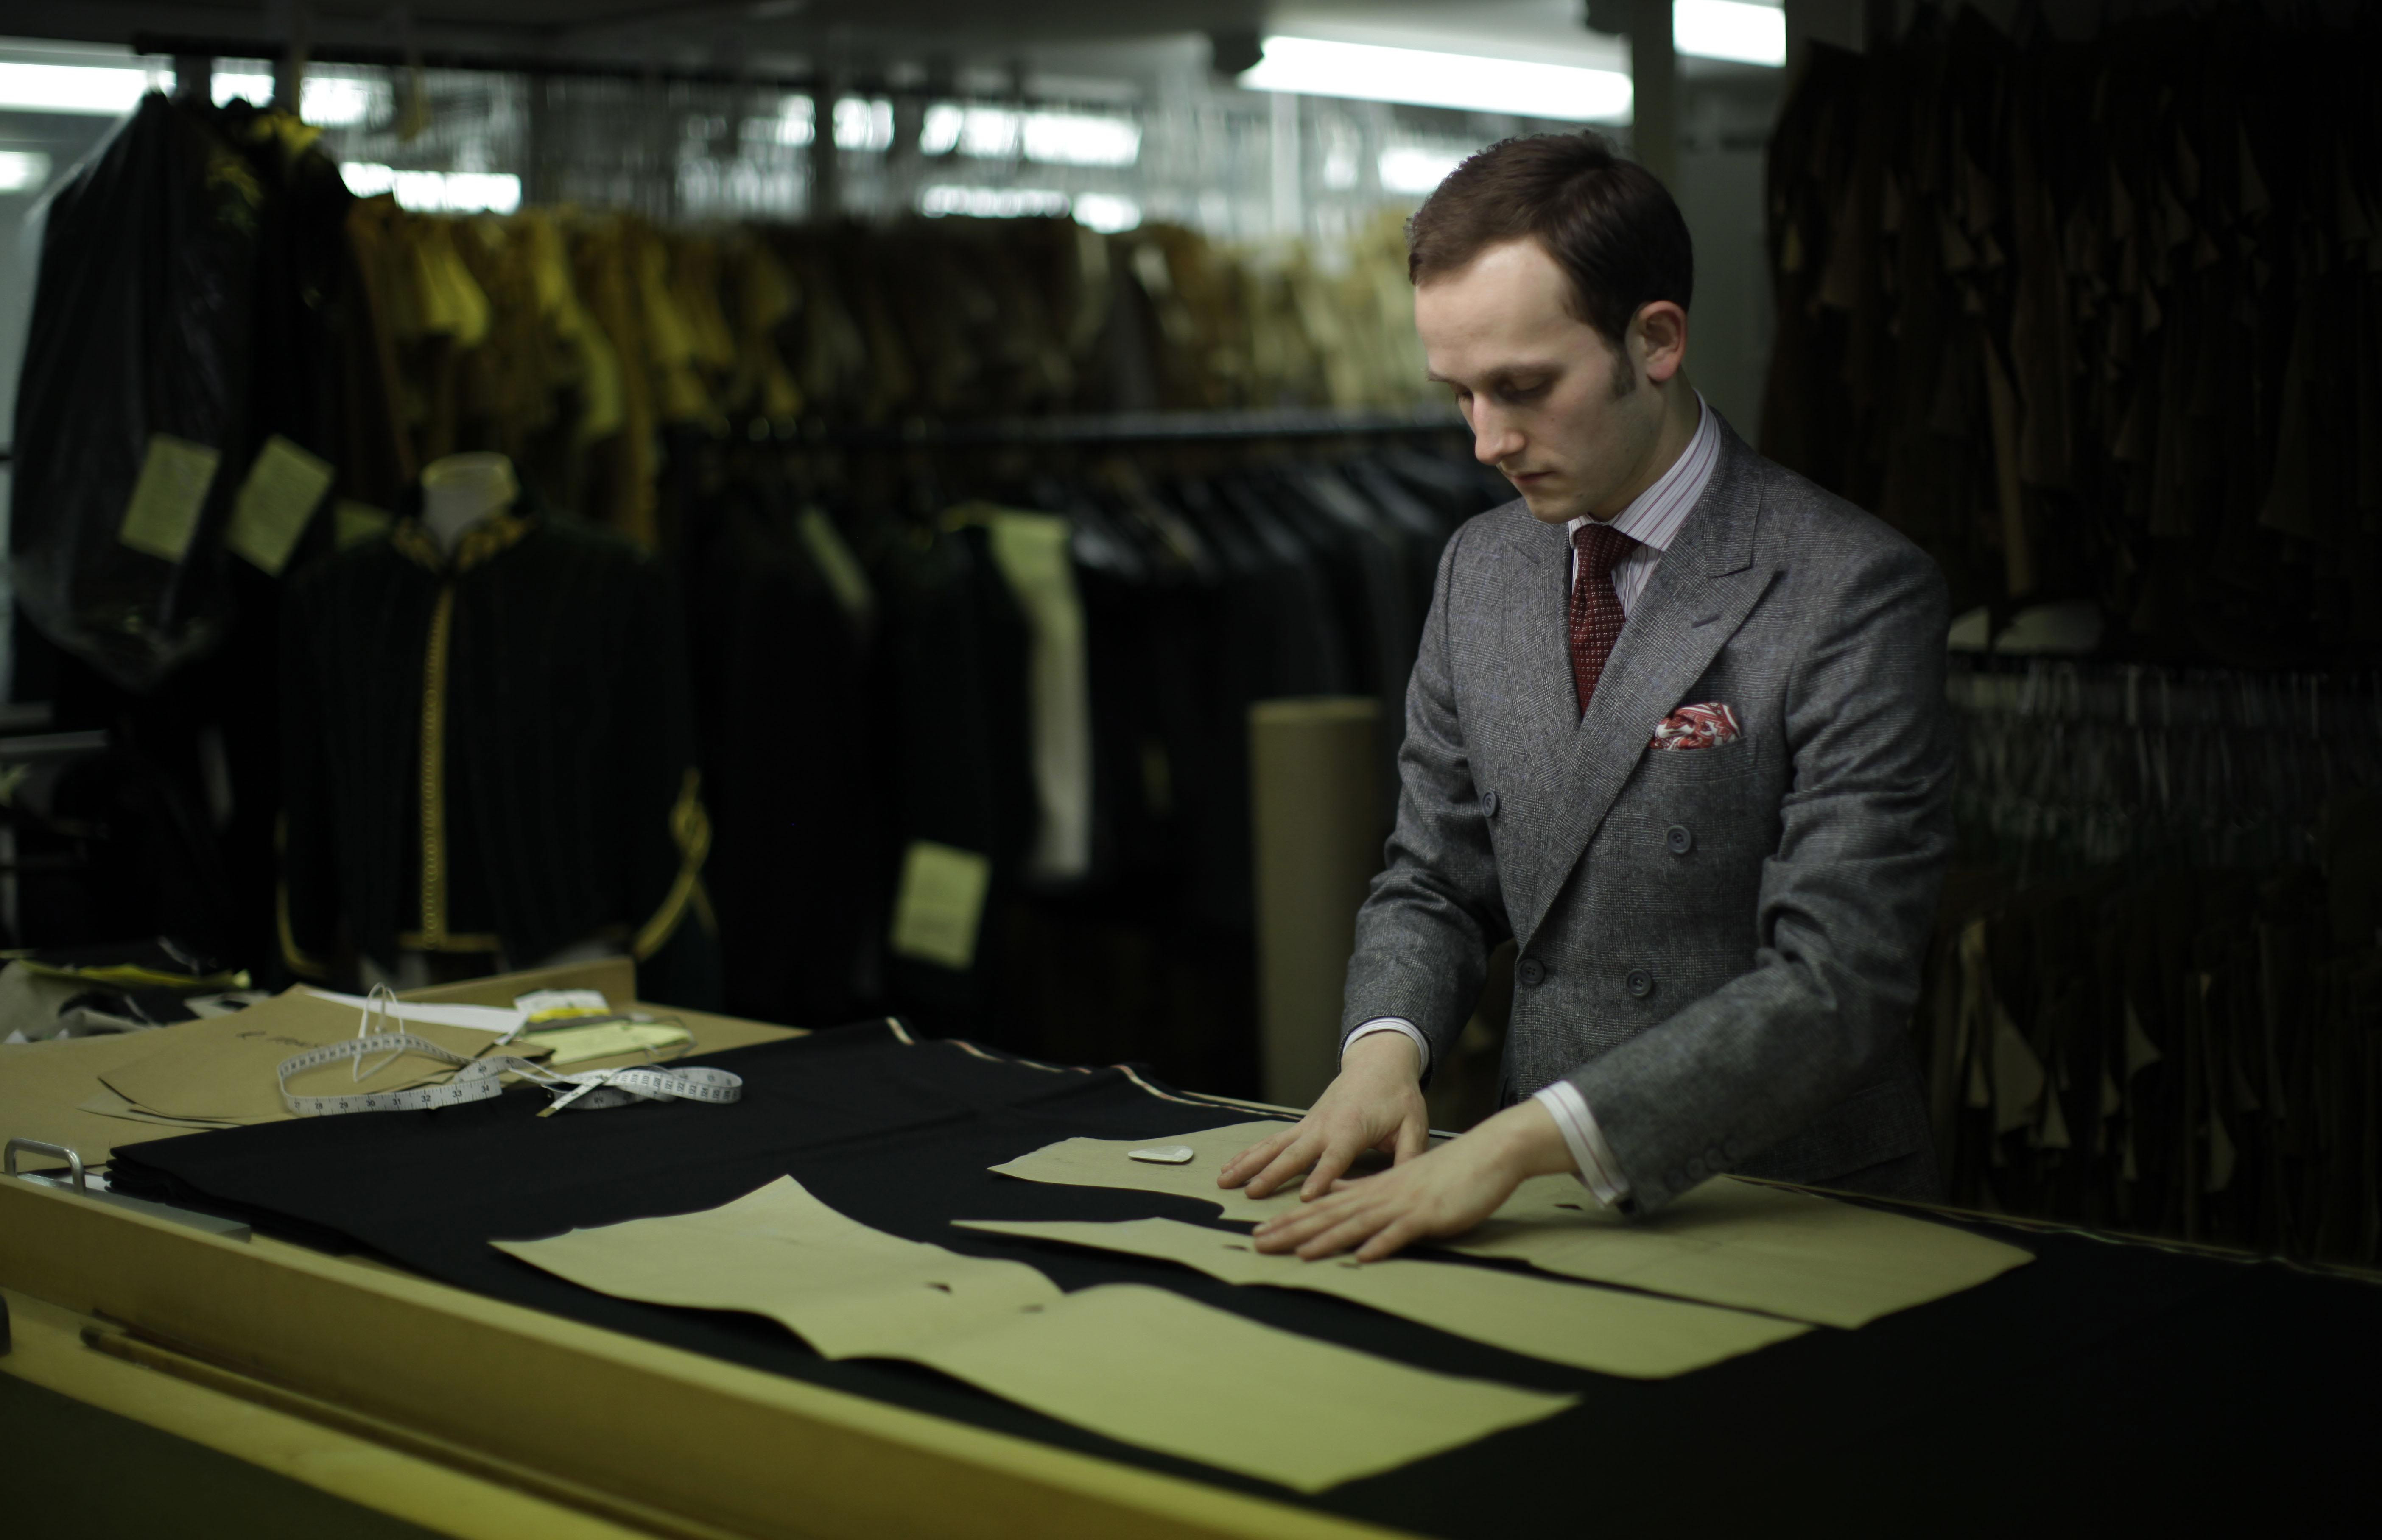 Gieves and Hawkes bespoke under cutter Richard Lawson poses for photographs at the tailor's premises on Saville Row in London